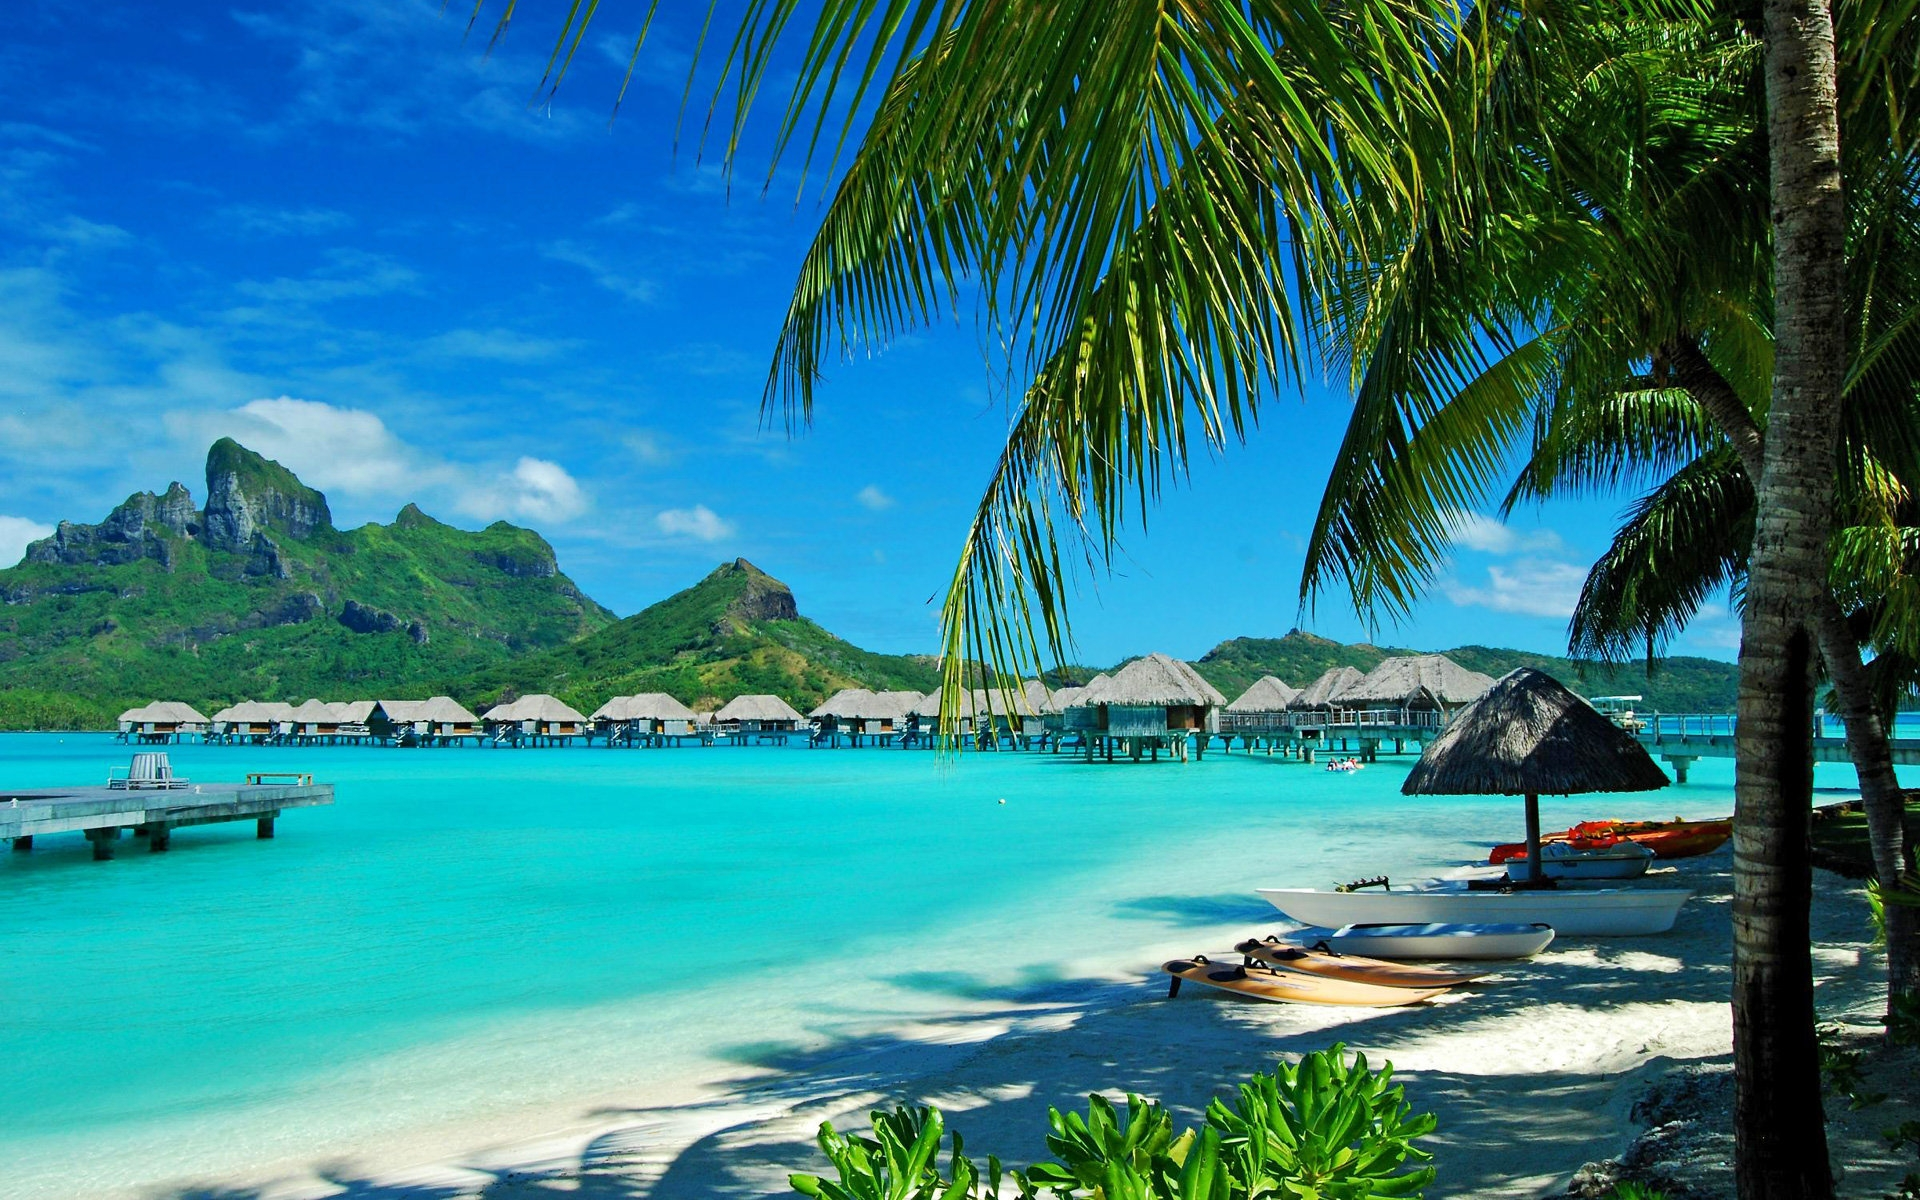 beaches locations exotic wallpaper wallpapers image hawaii 1920x1200